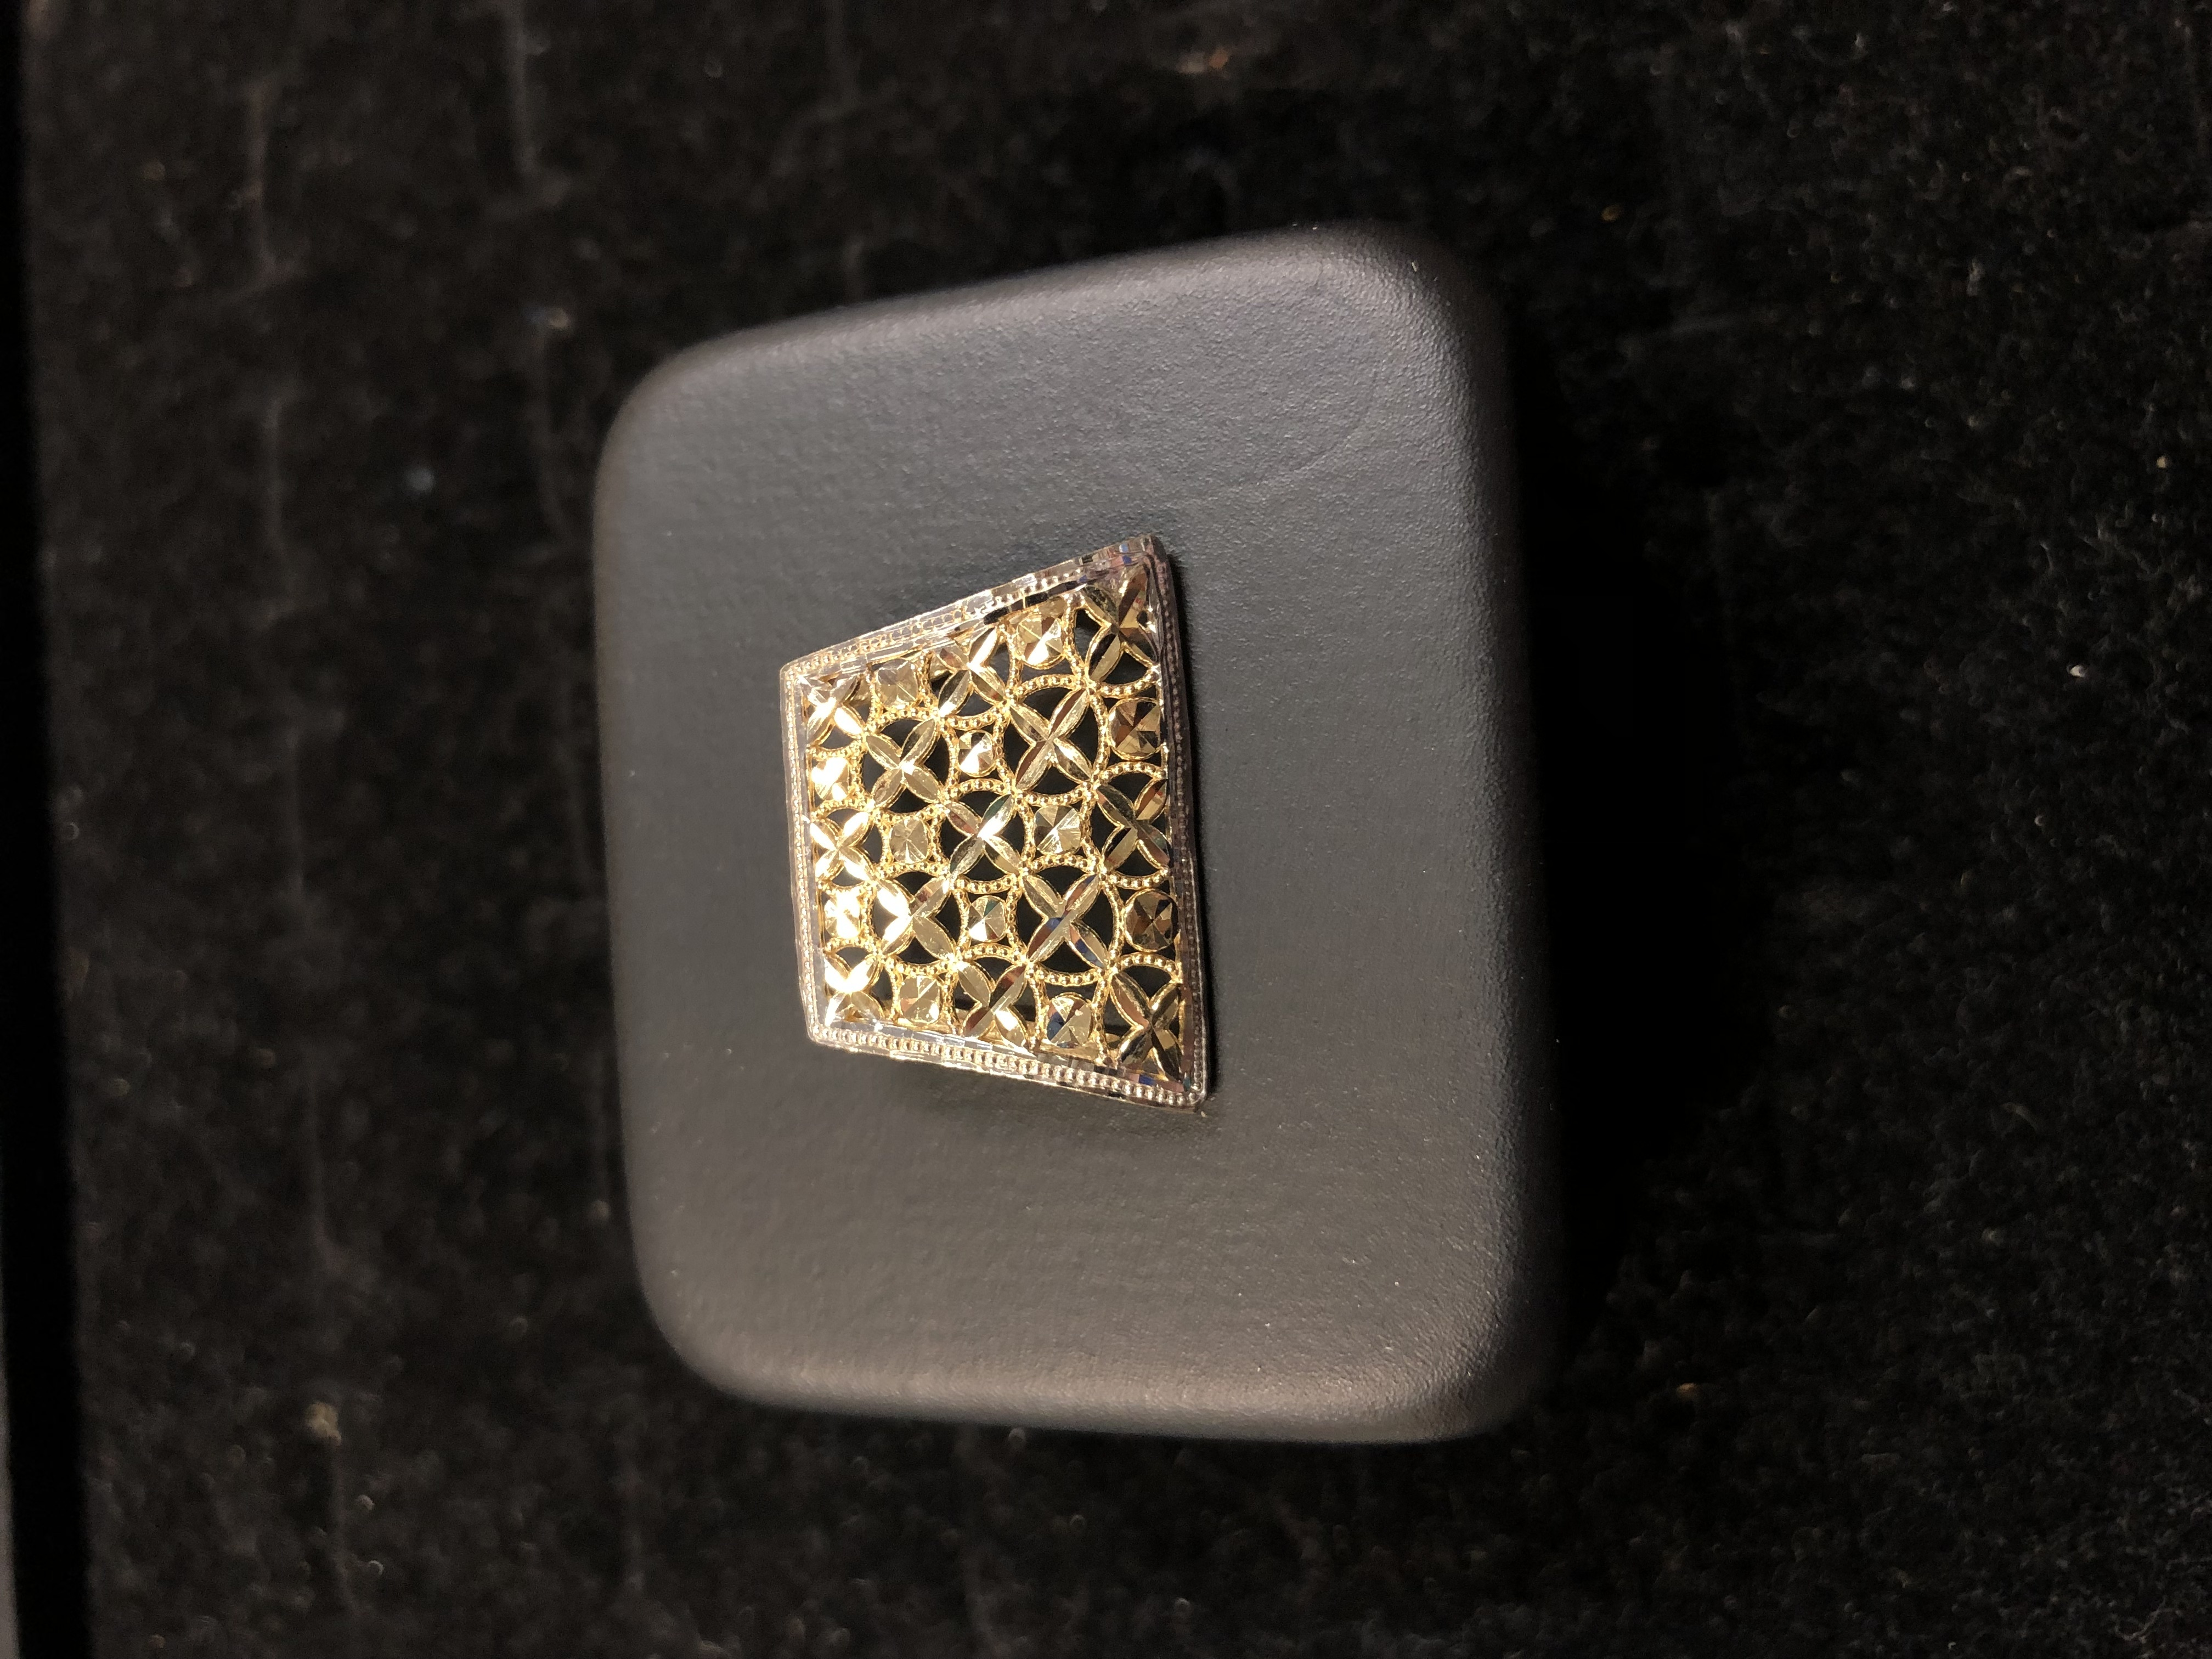 10 KT YELLOW GOLD SURROUNDED BY WHITE GOLD TRIM LASER CUT CHARM WITH STAR DESIGN